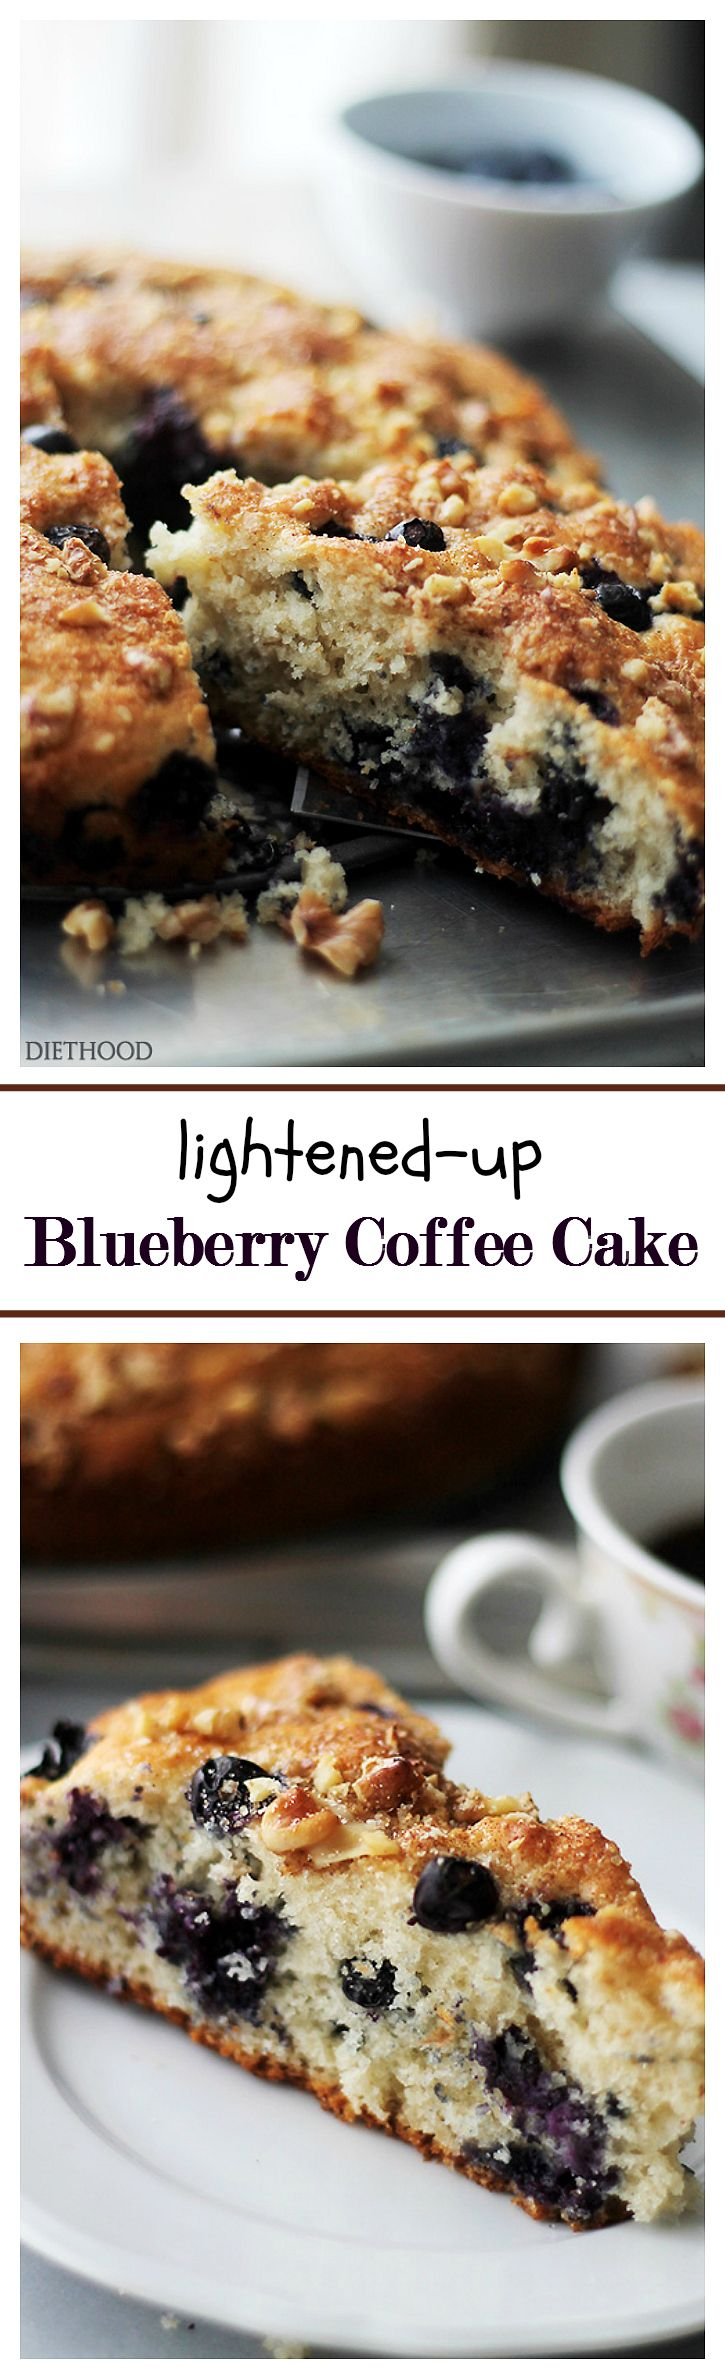 LightenedUp Blueberry Coffee Cake